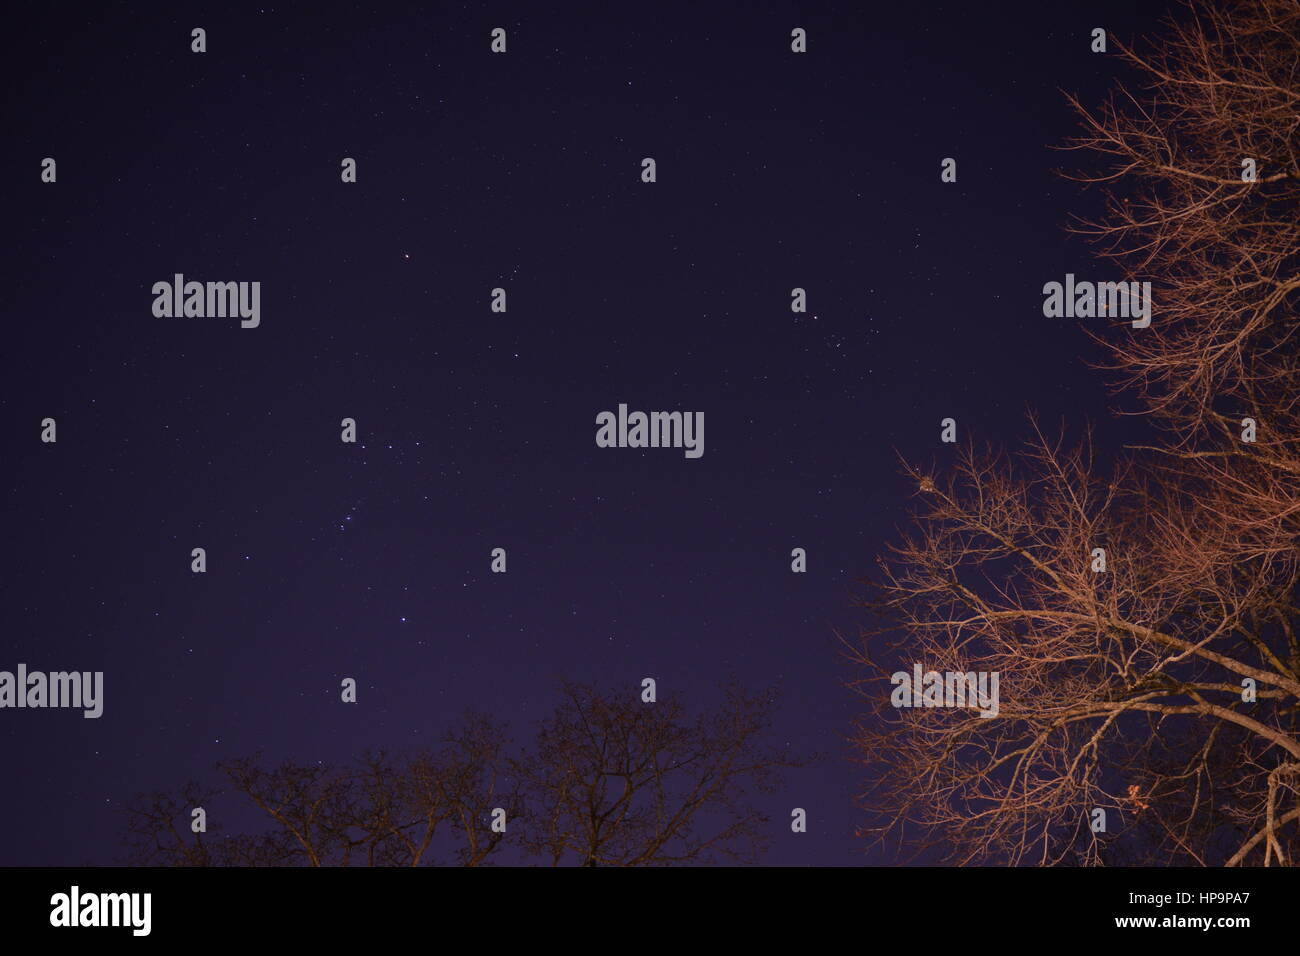 A long exposure of the night sky, with visible stars, and trees in the foreground, and background. - Stock Image